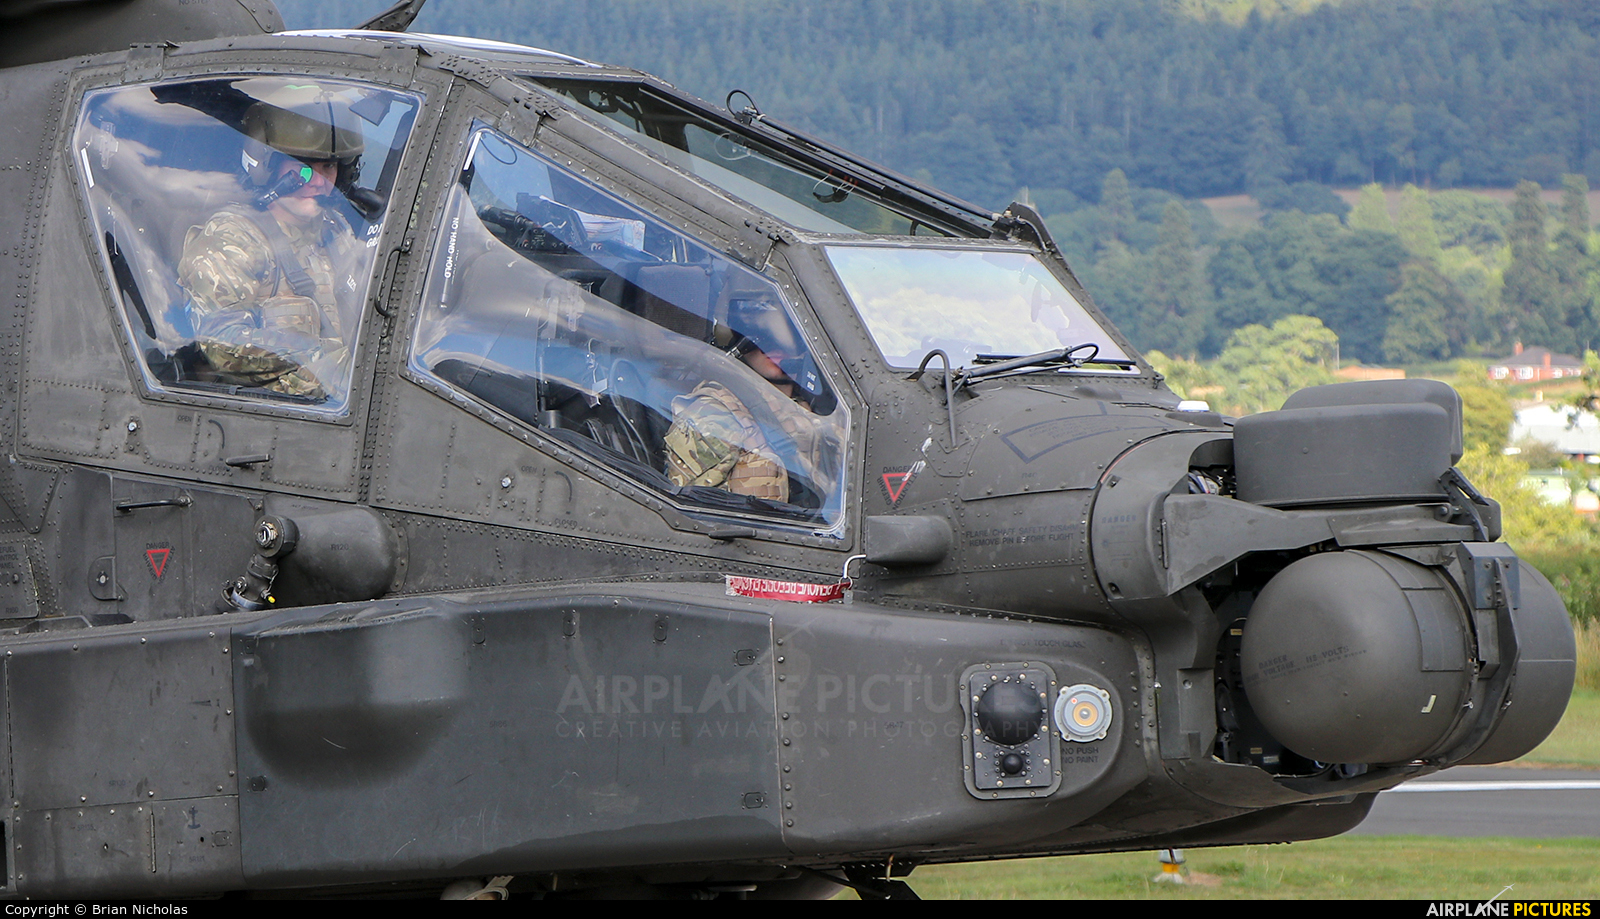 British Army ZJ211 aircraft at Welshpool